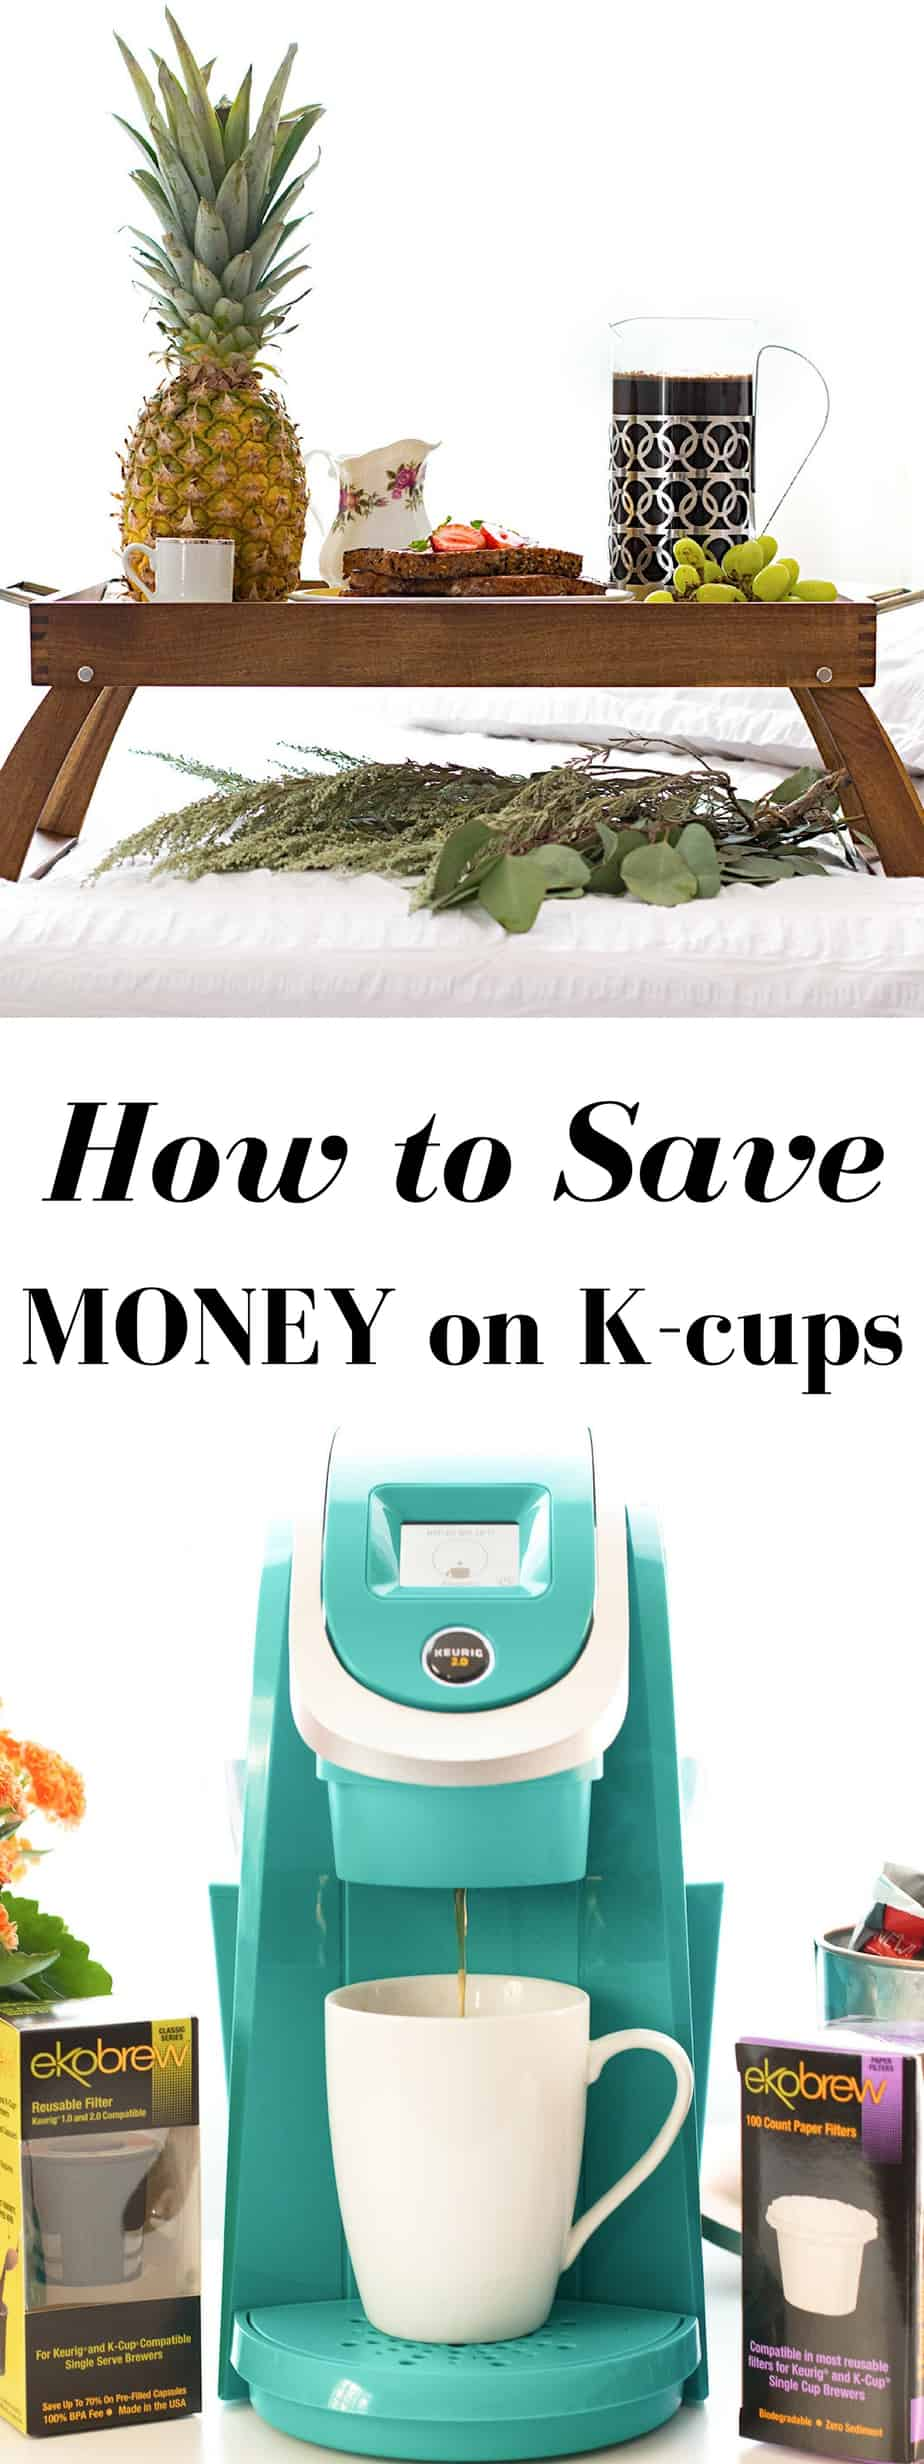 how to save money on k-cups. Stay green, save money! 100% BPA free